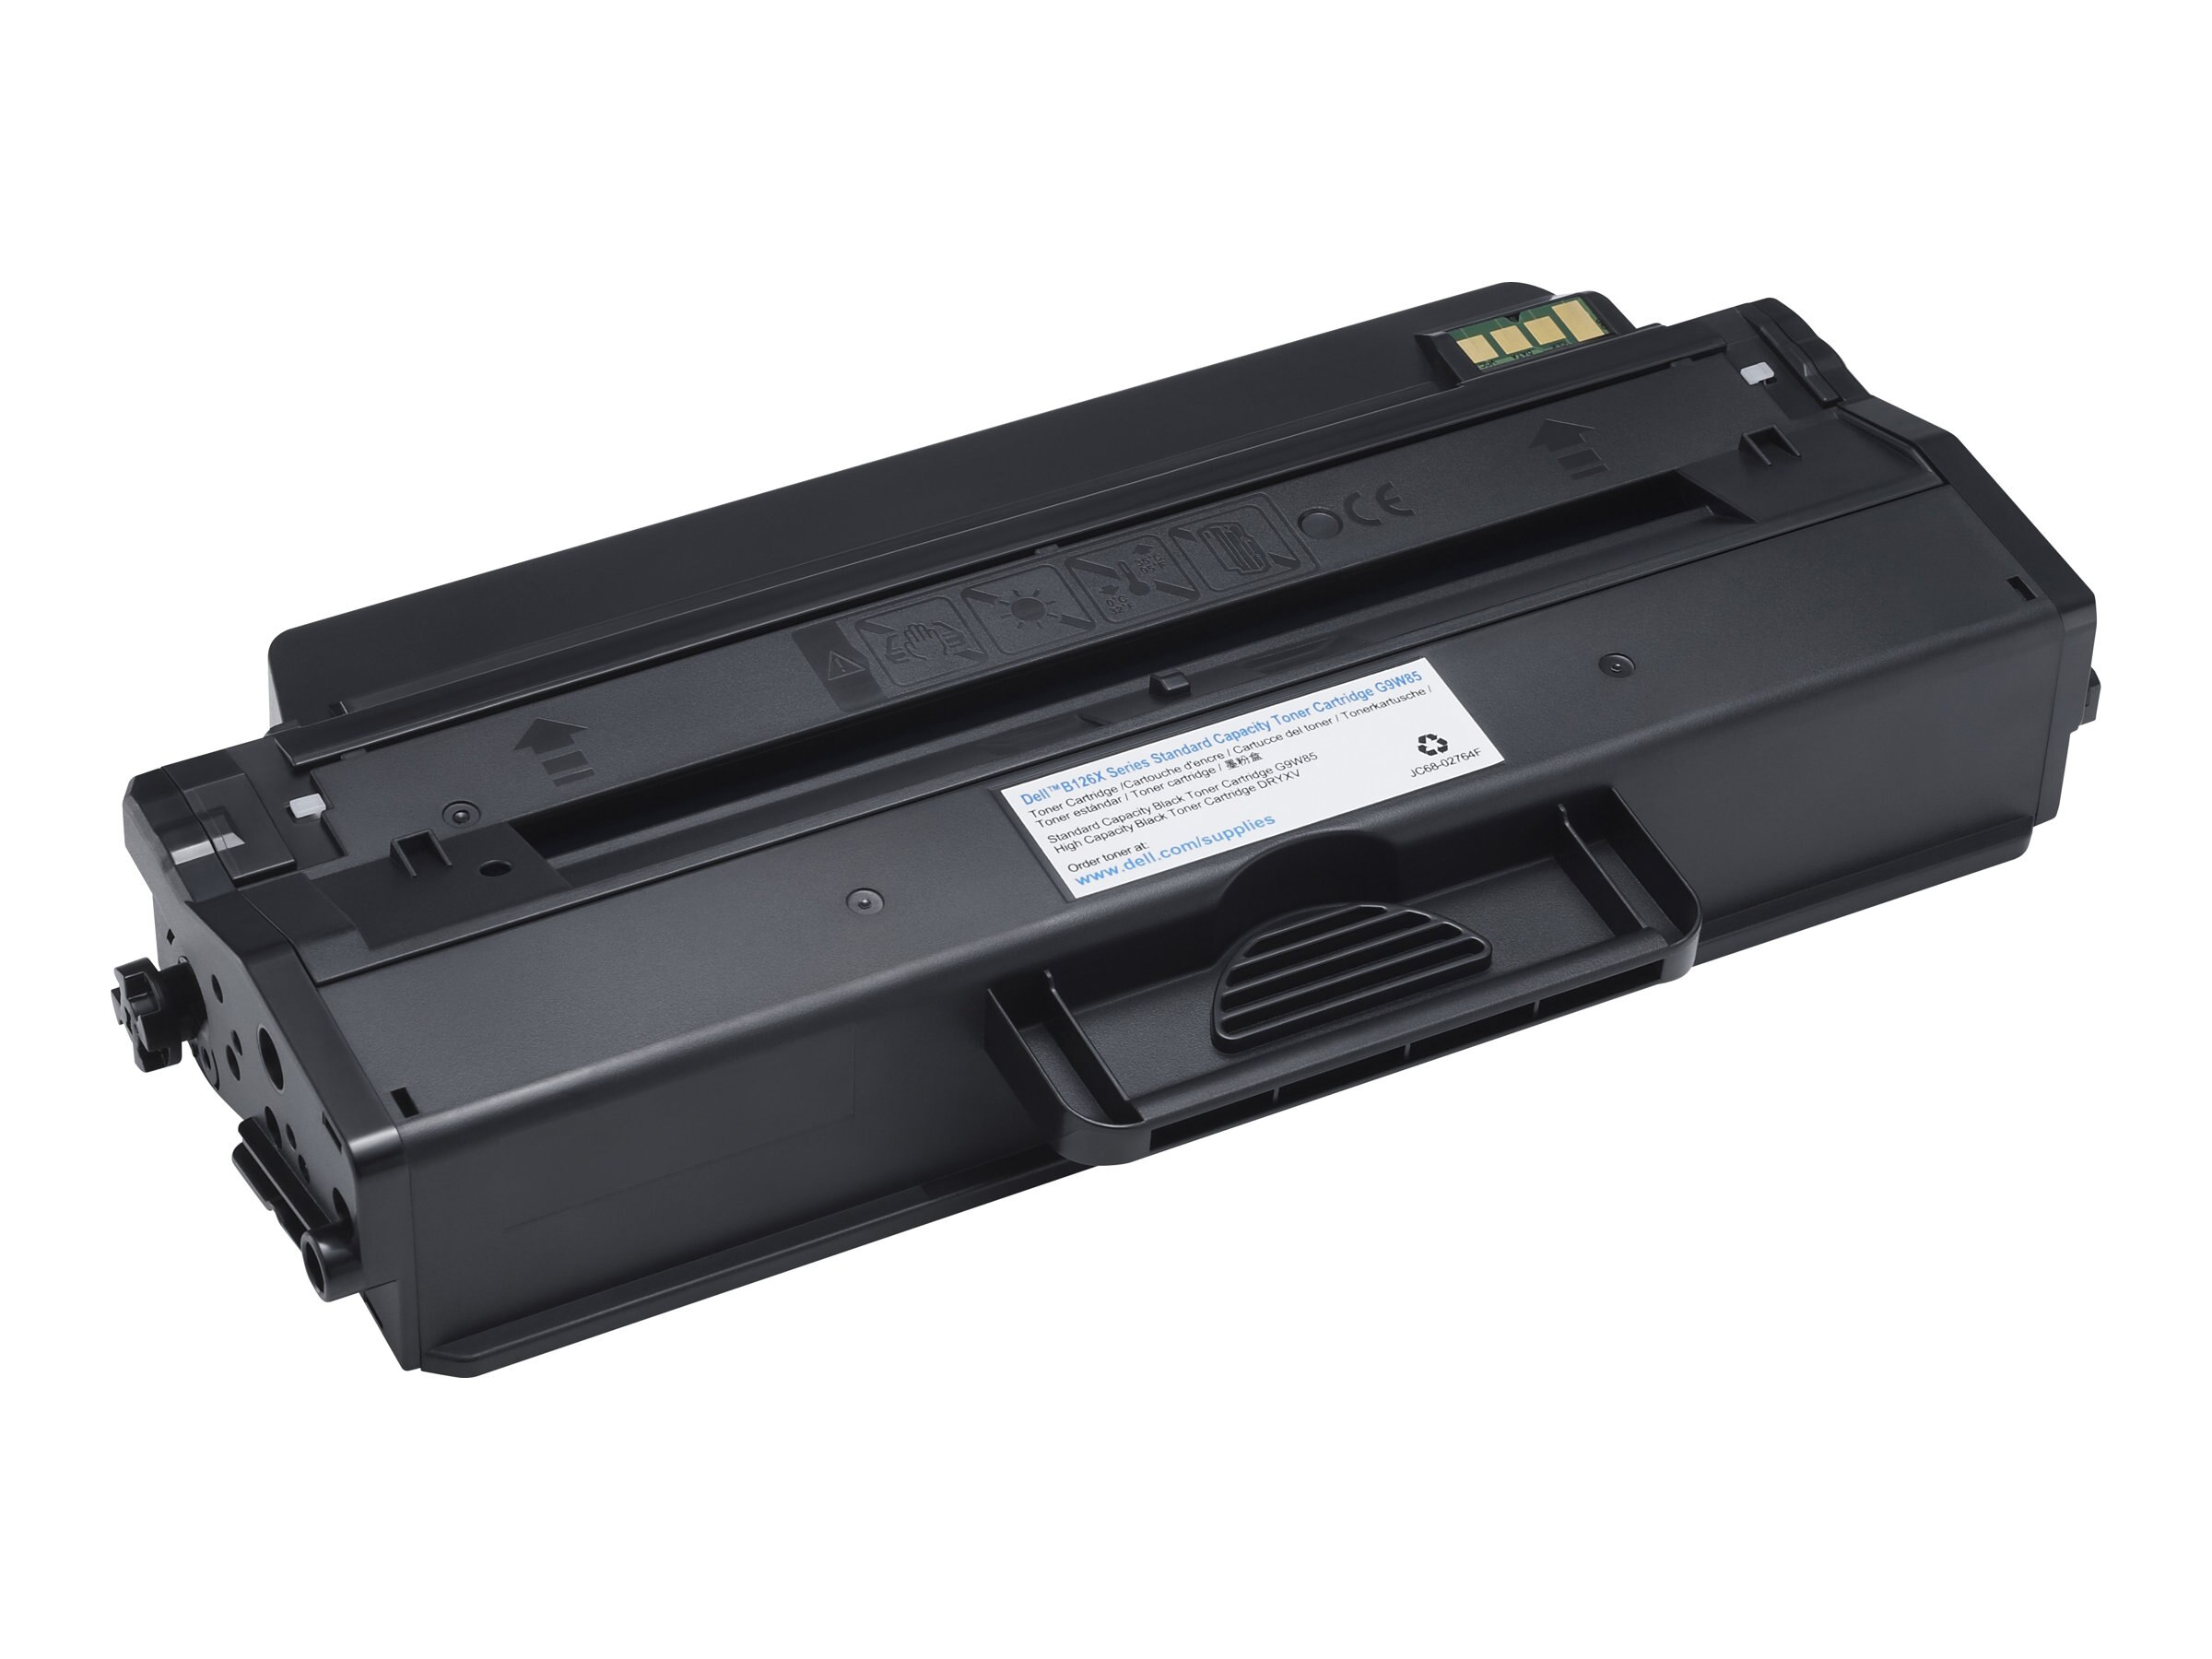 Dell 1500-Page Black Toner Cartridge for Dell B1260dn, B1265dnf & B1265dfw, G9W85